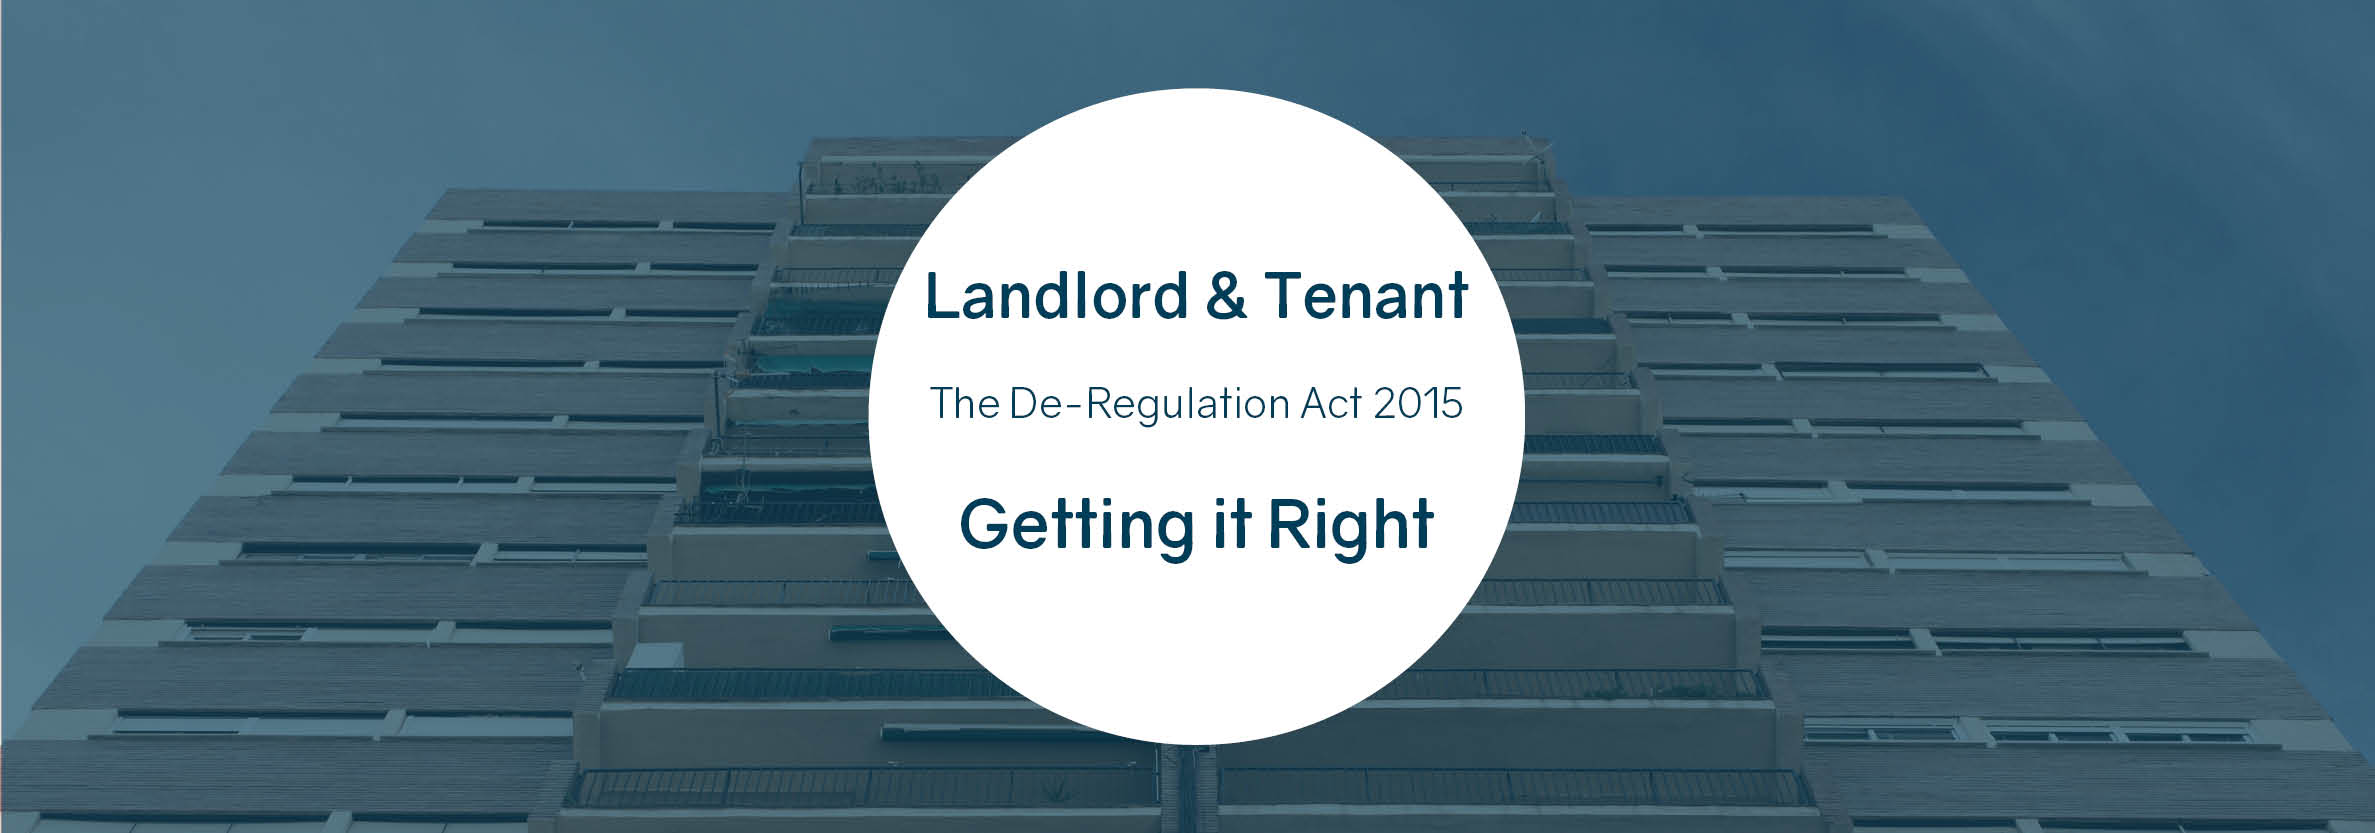 Landlord and Tenant - Getting it Right